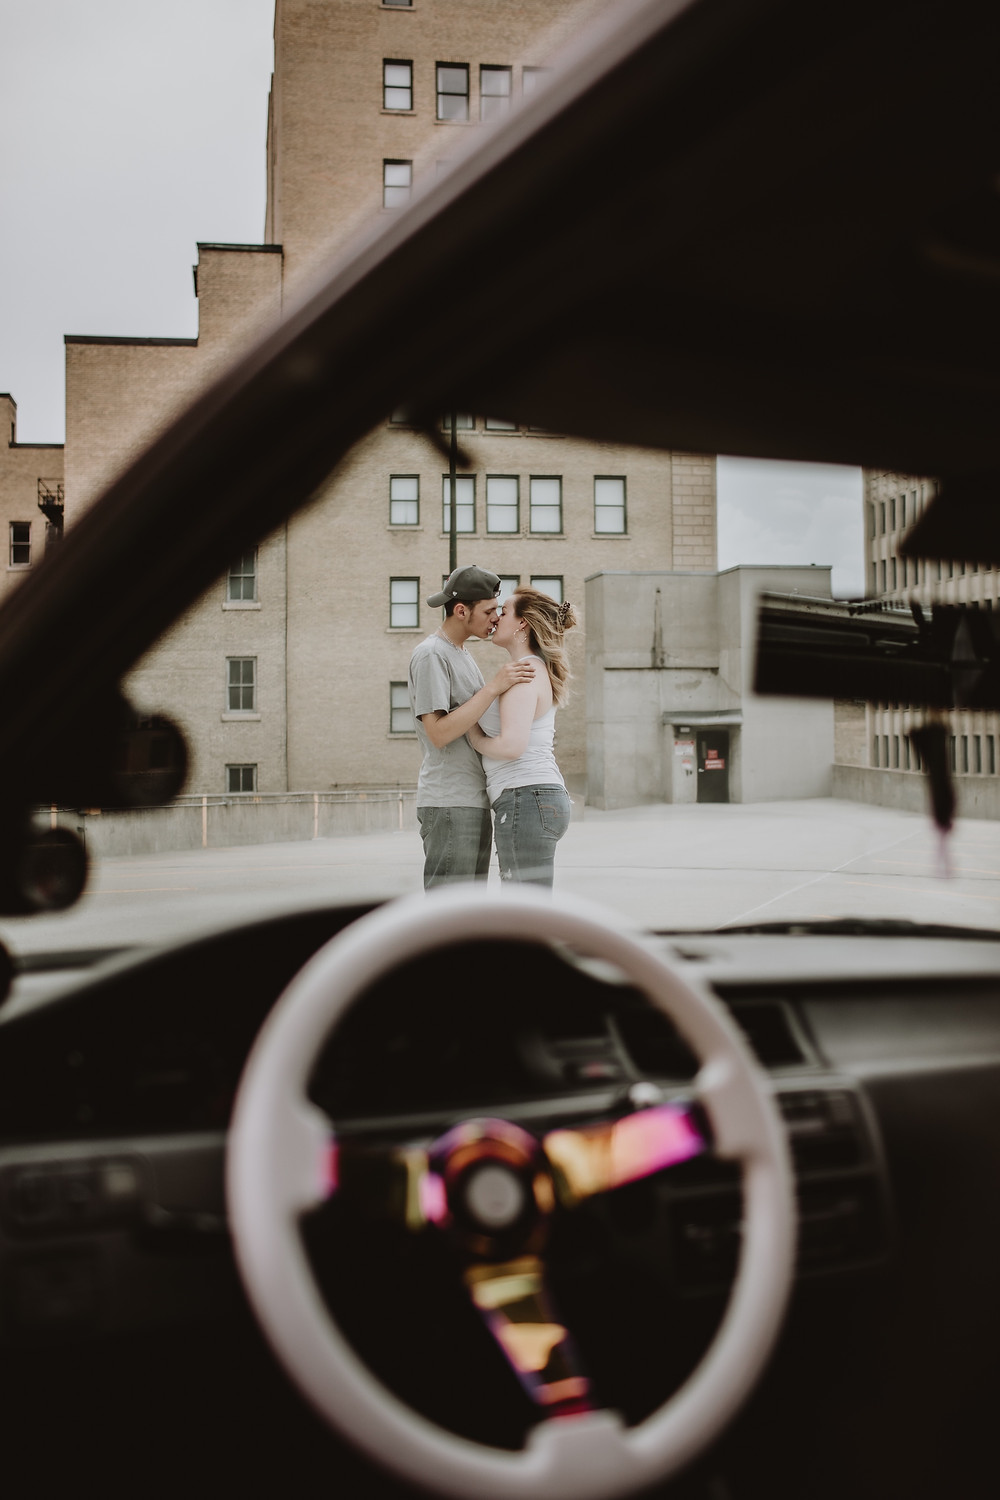 You couple kisses, framed by the front windshield of their car.